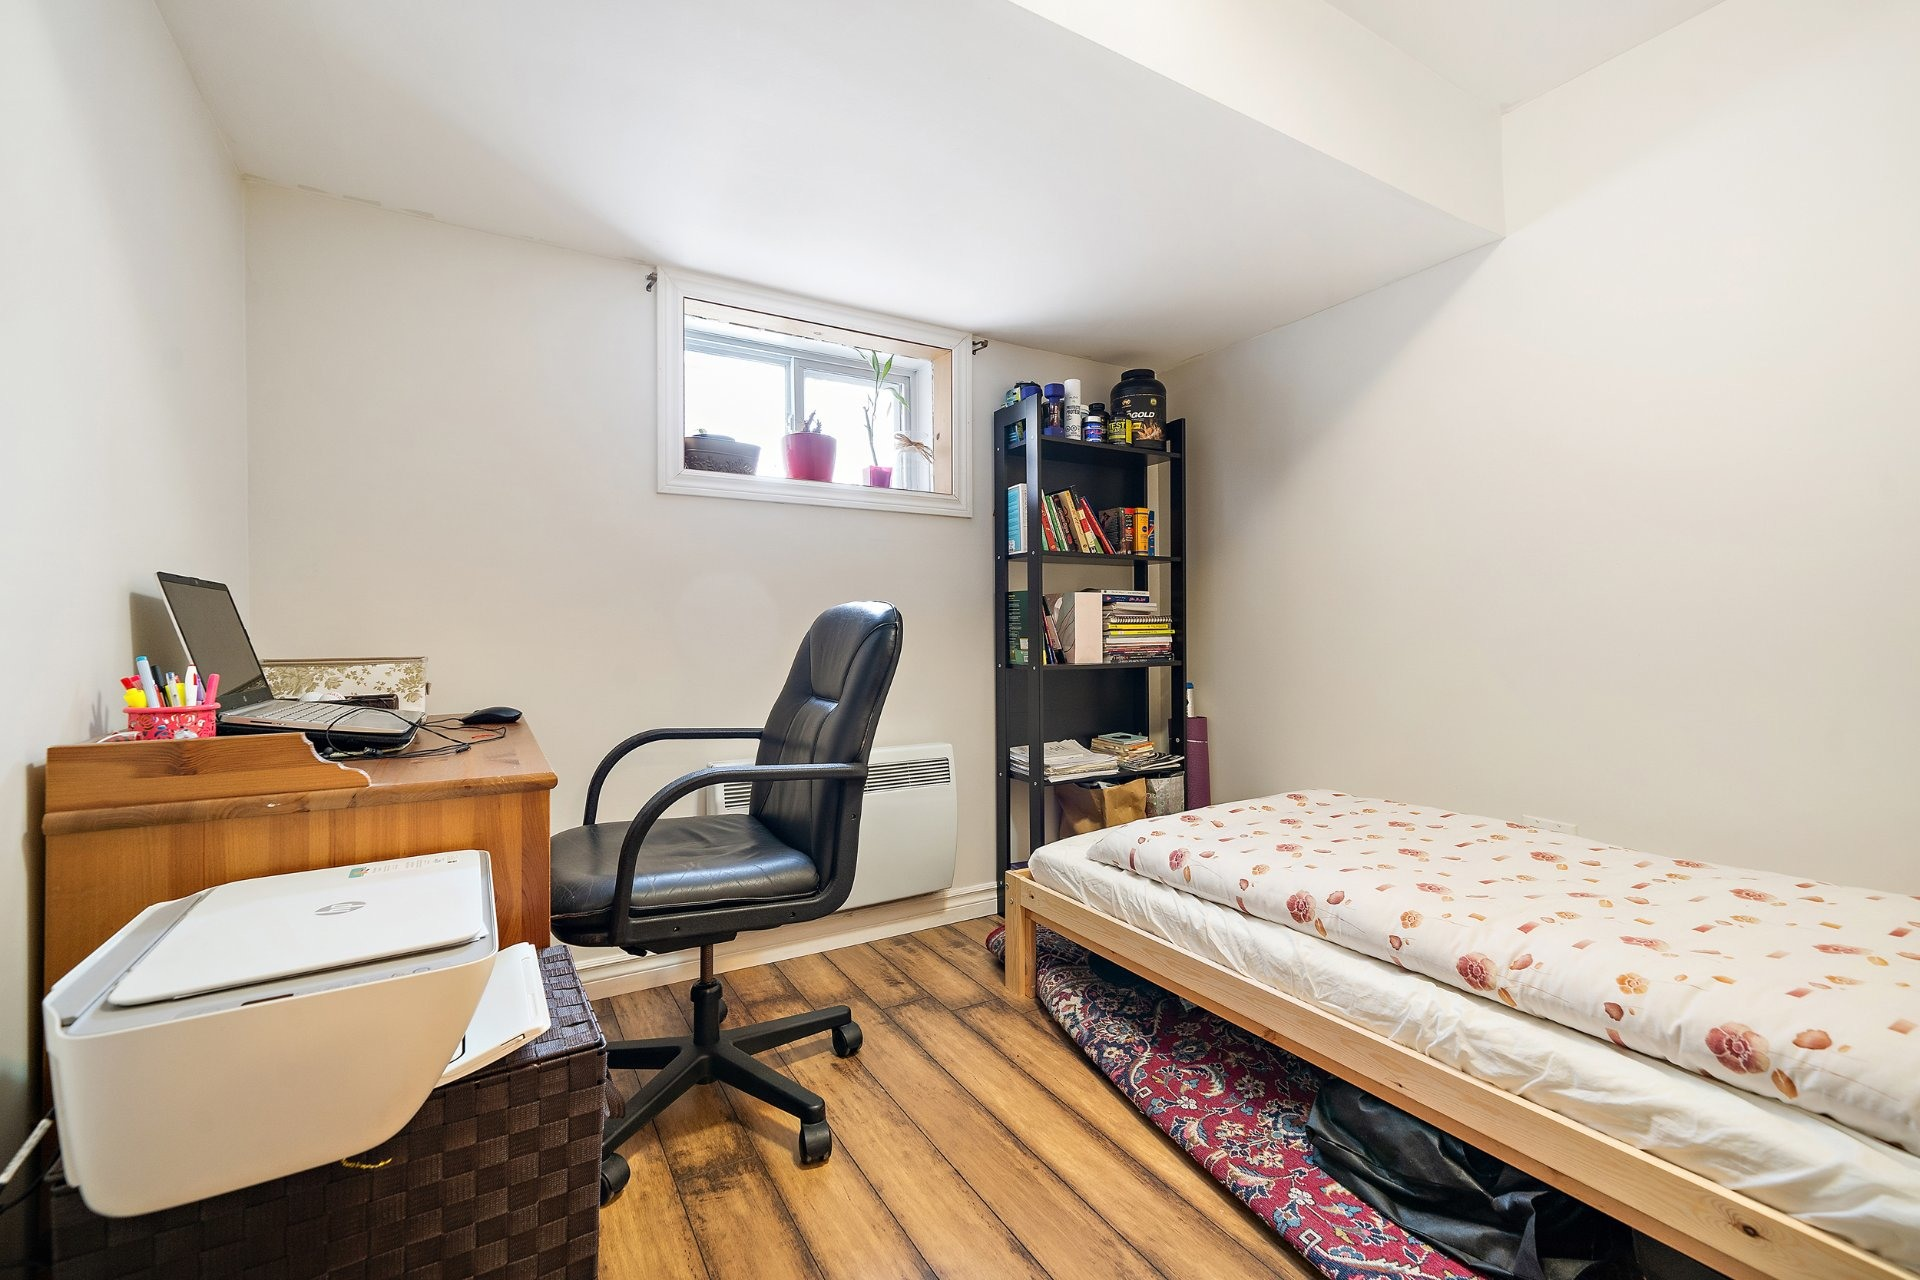 Duplex For sale Montréal-Ouest - 5 rooms